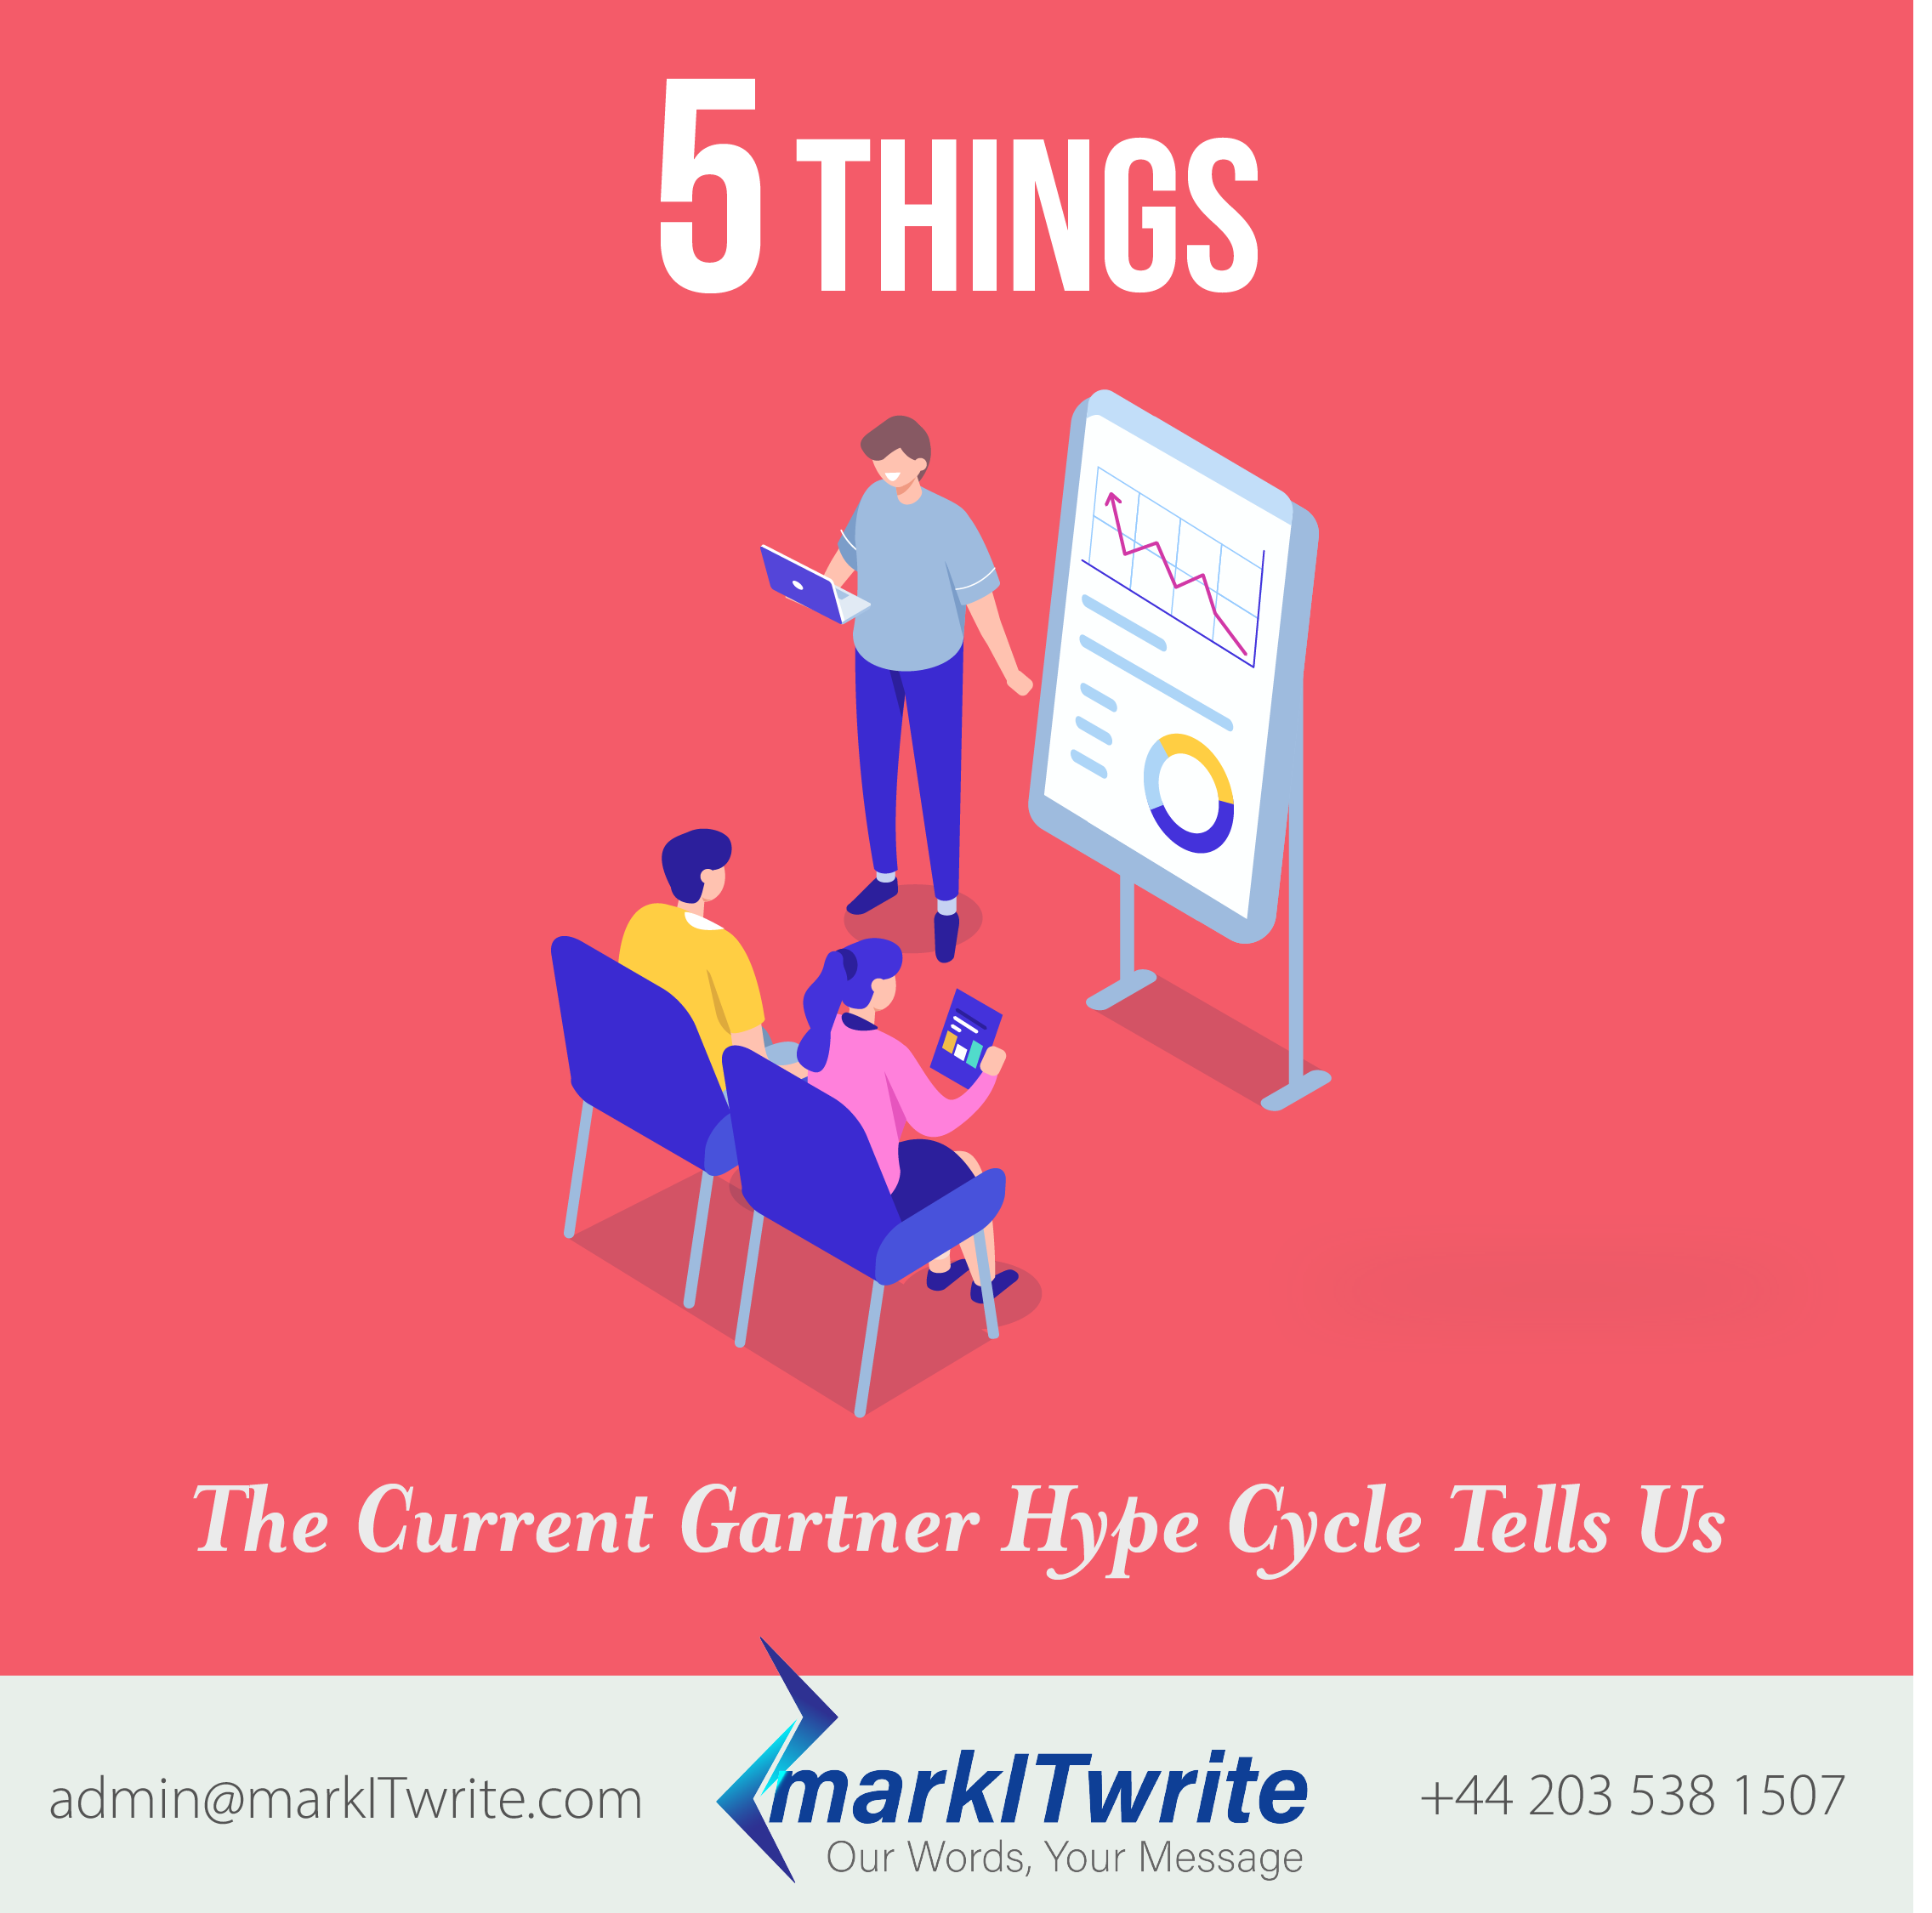 5 Things the Current Gartner Hype Cycle Tells Us